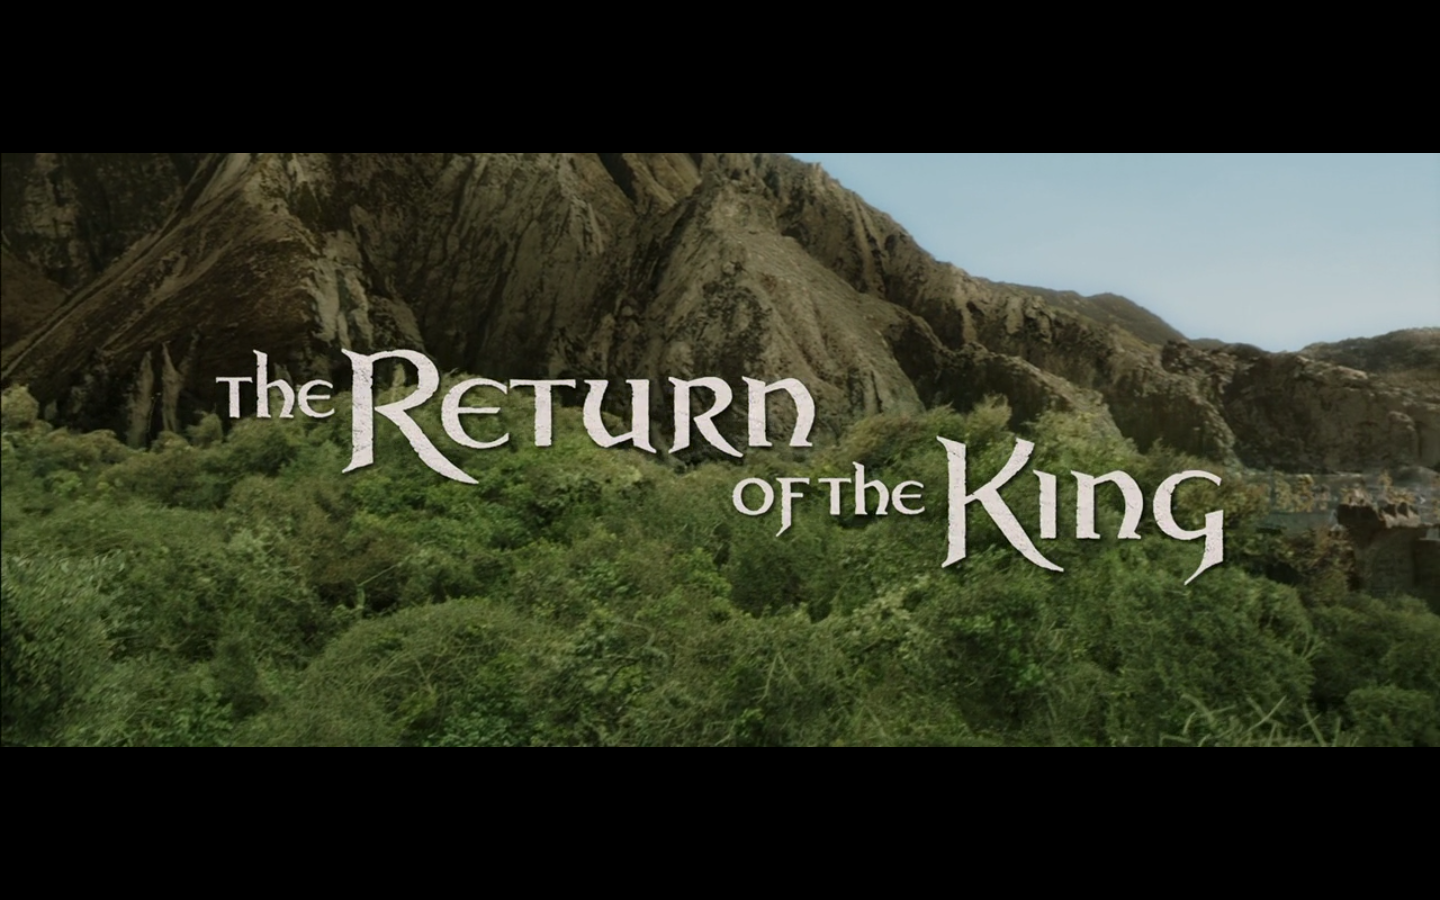 the-lord-of-the-rings-the-return-of-the-king-title-card.png